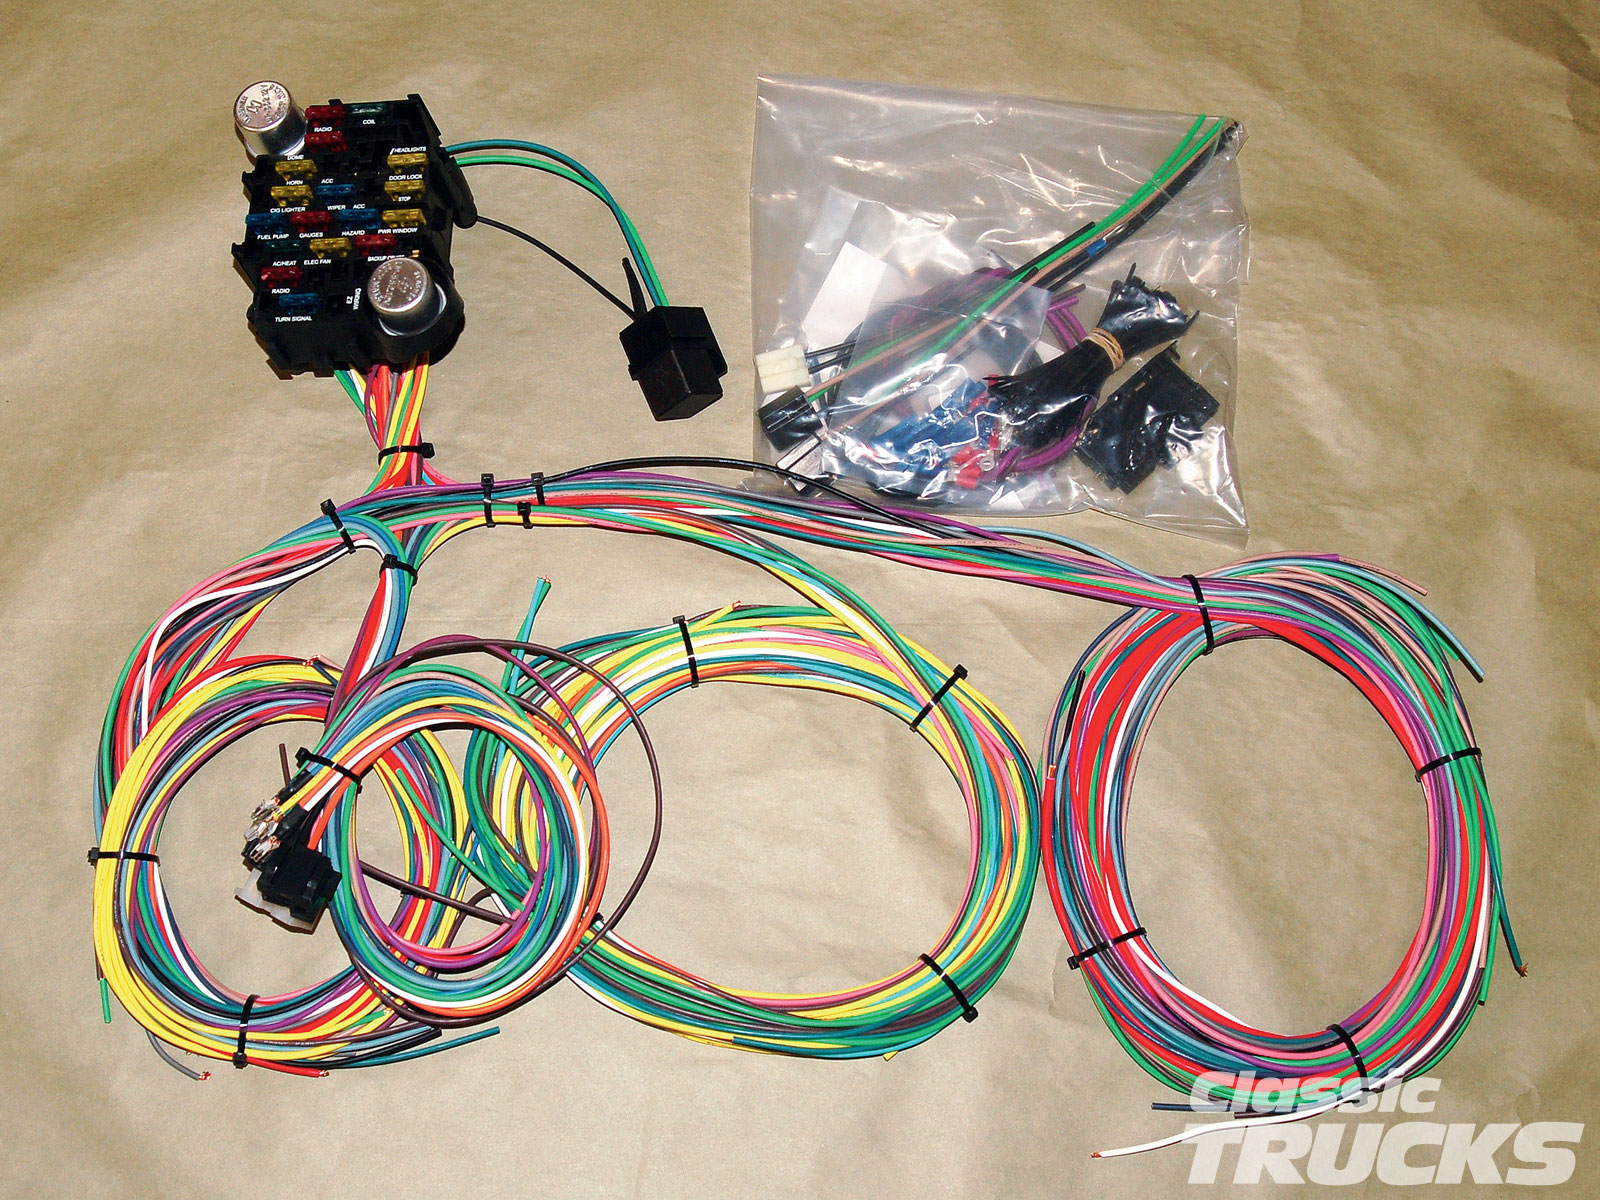 1010clt 02 o aftermarket wiring harness install kit?resize=640%2C480 how much does a wire harness cost to replace hobbiesxstyle how much does it cost to replace a wiring harness at honlapkeszites.co